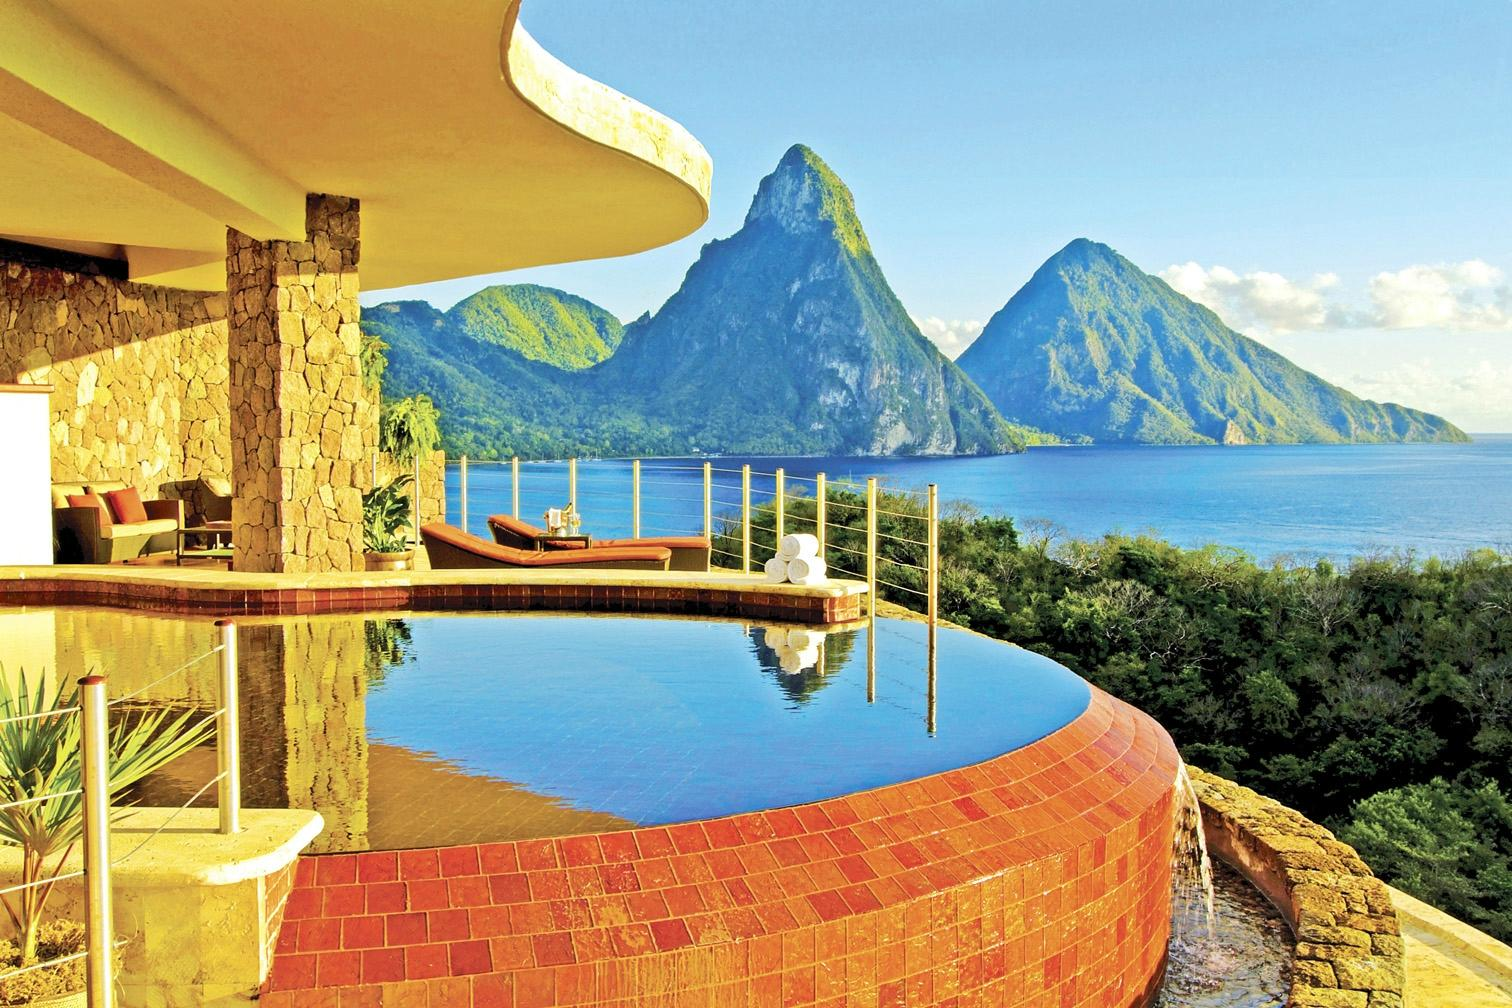 jade mountain resort - updated 2017 prices & hotel reviews (st